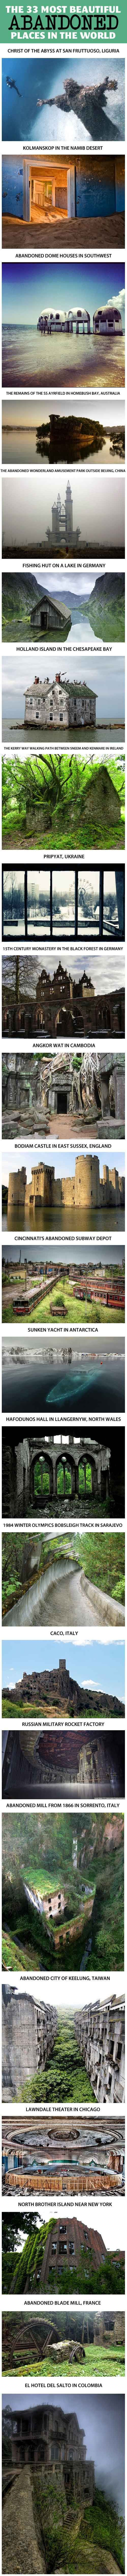 33 abandoned places.